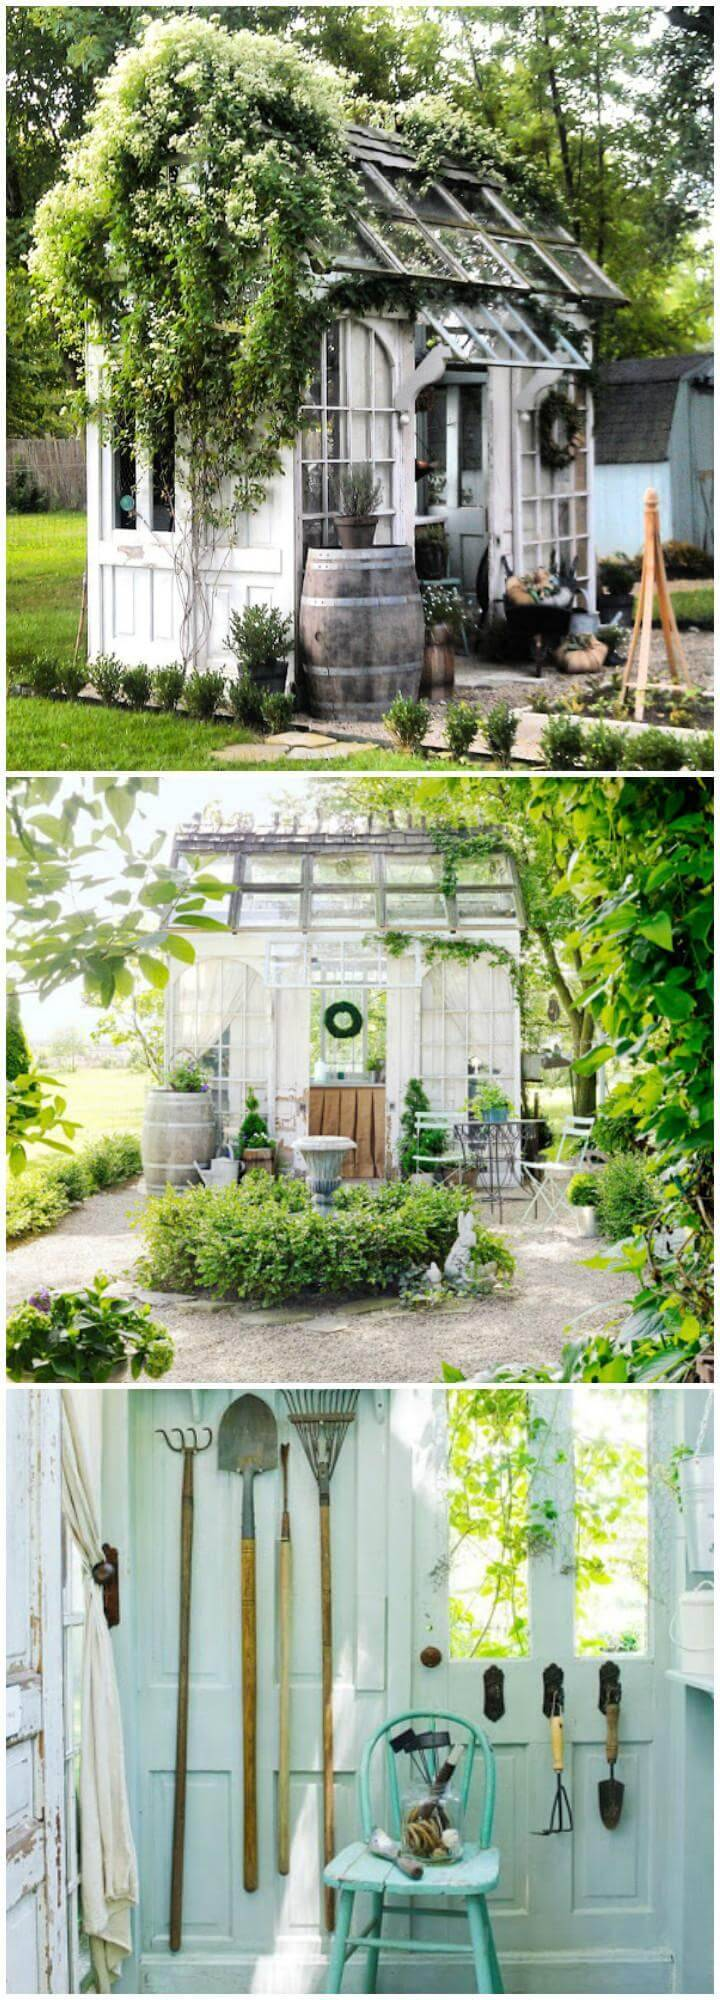 80 diy greenhouse ideas with step by step tutorials page 5 of 7